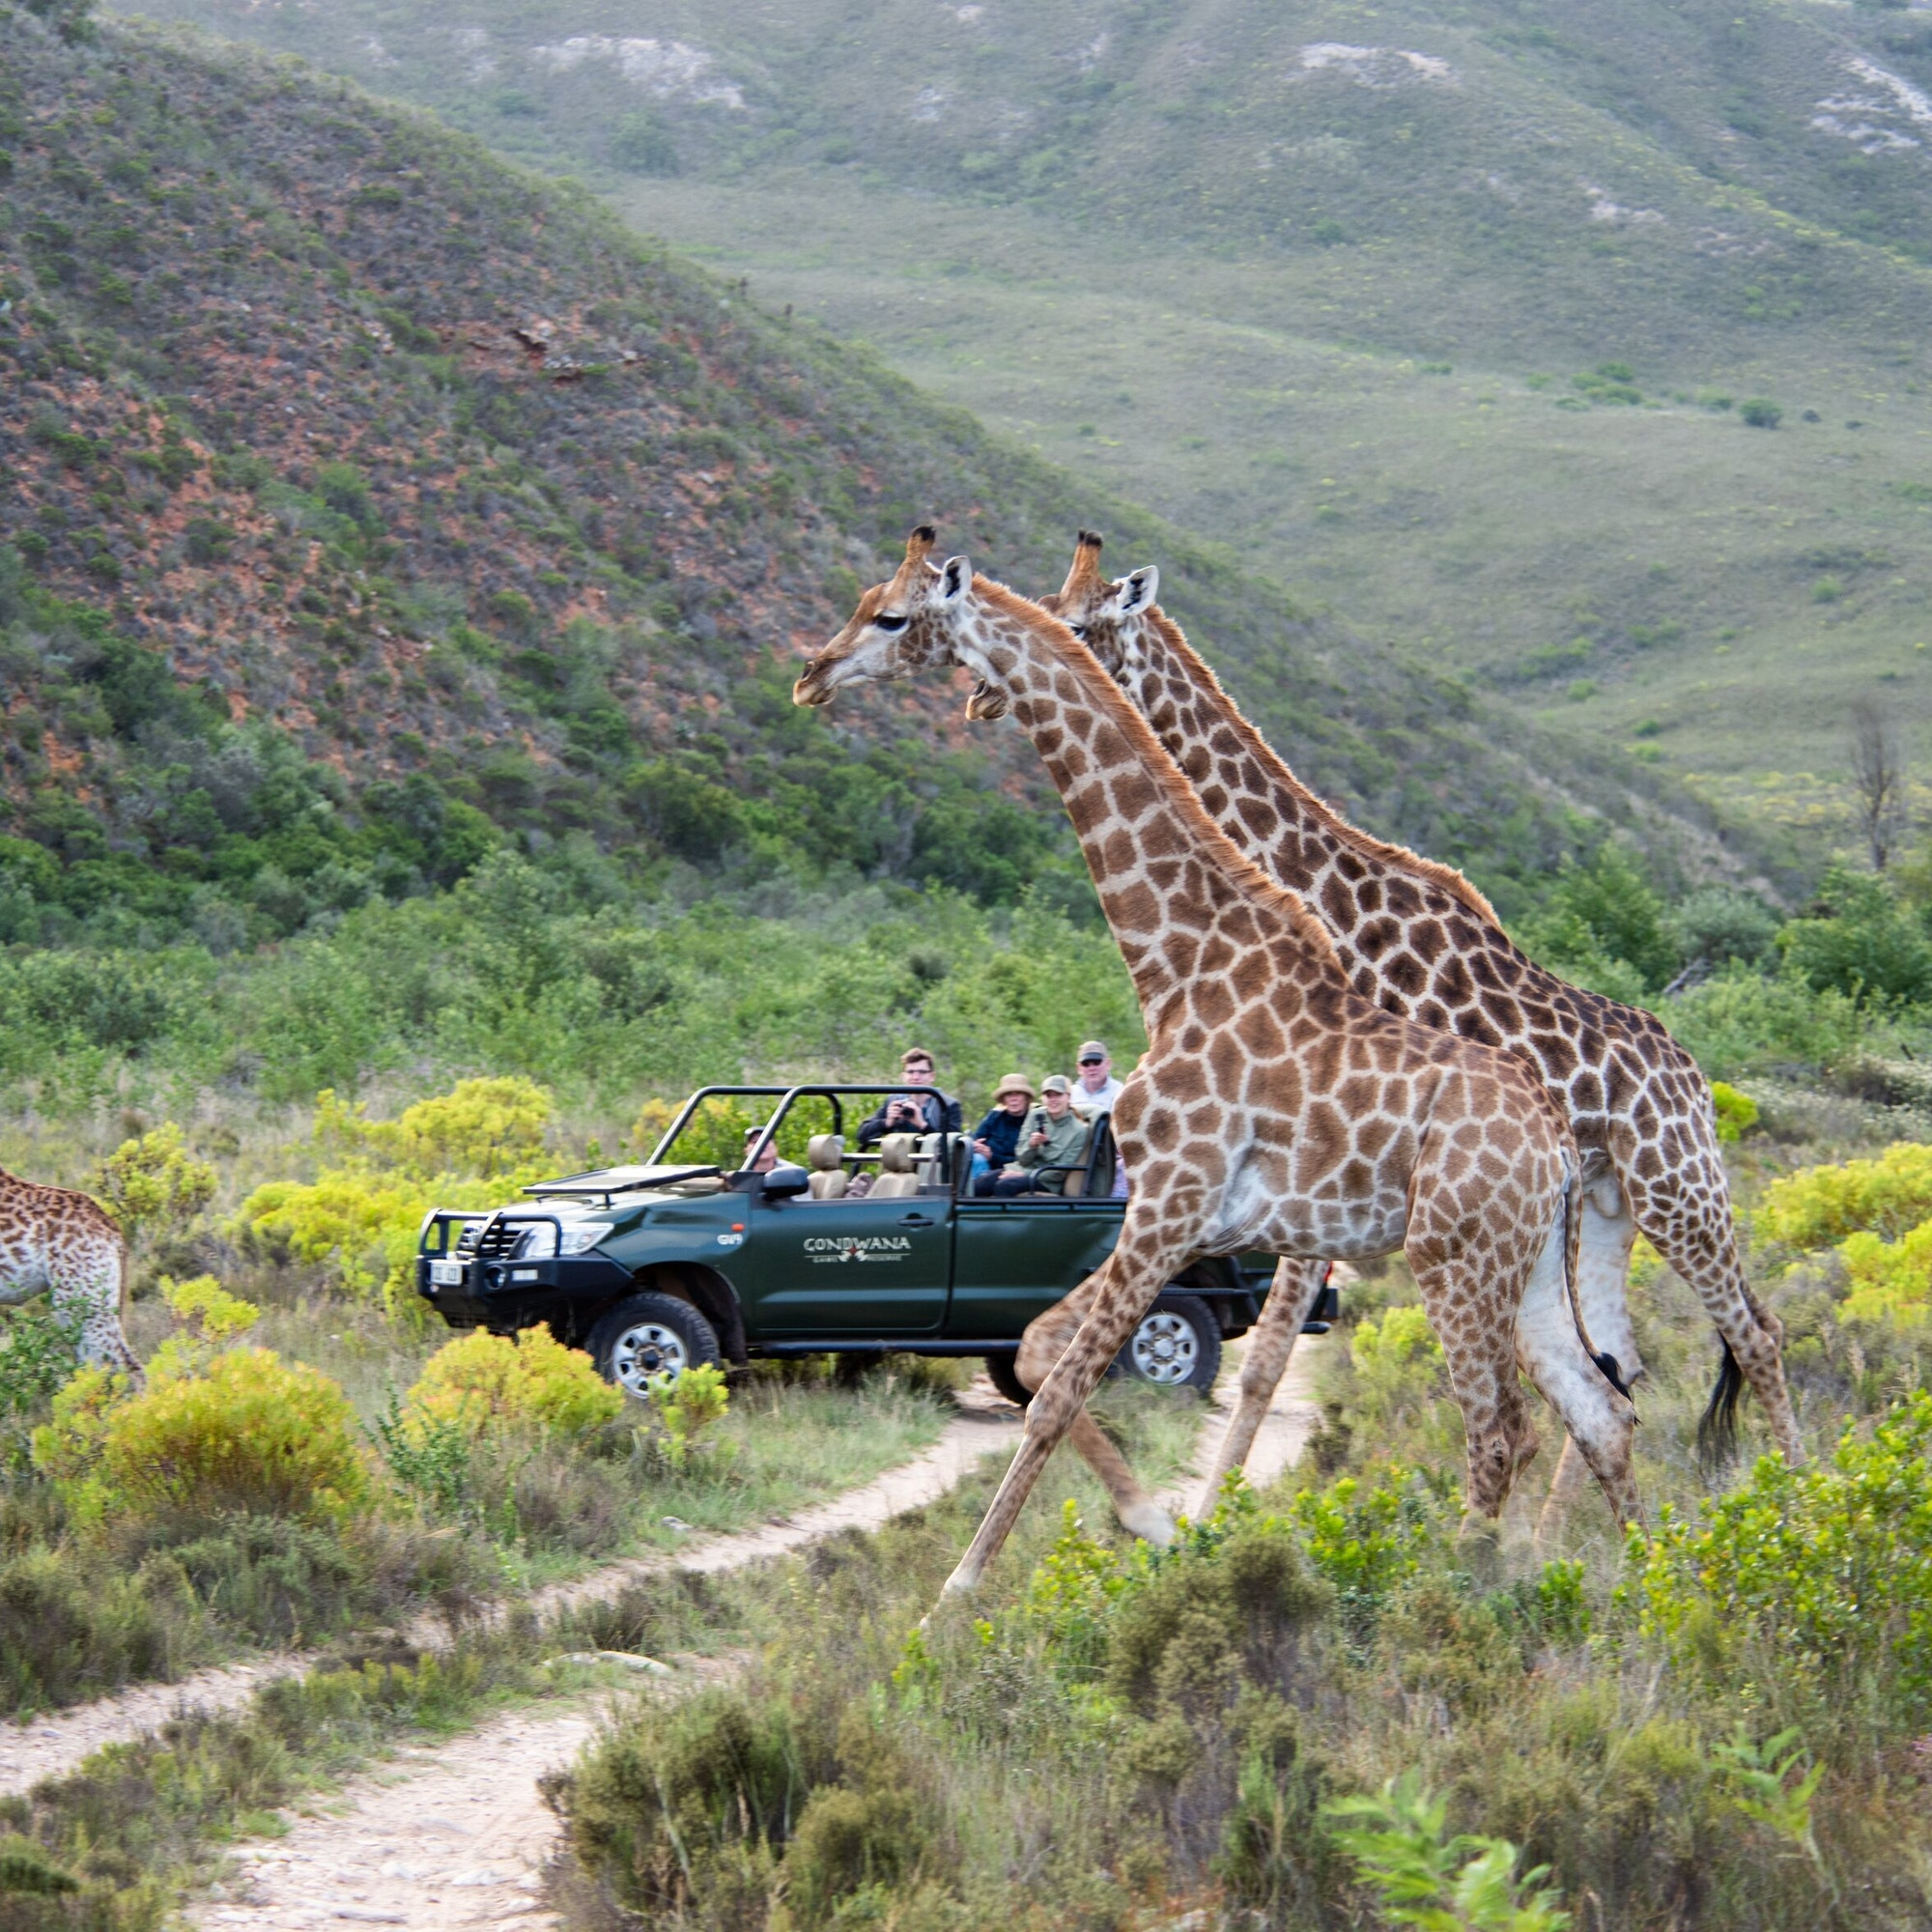 Gondwana Game Drive 3